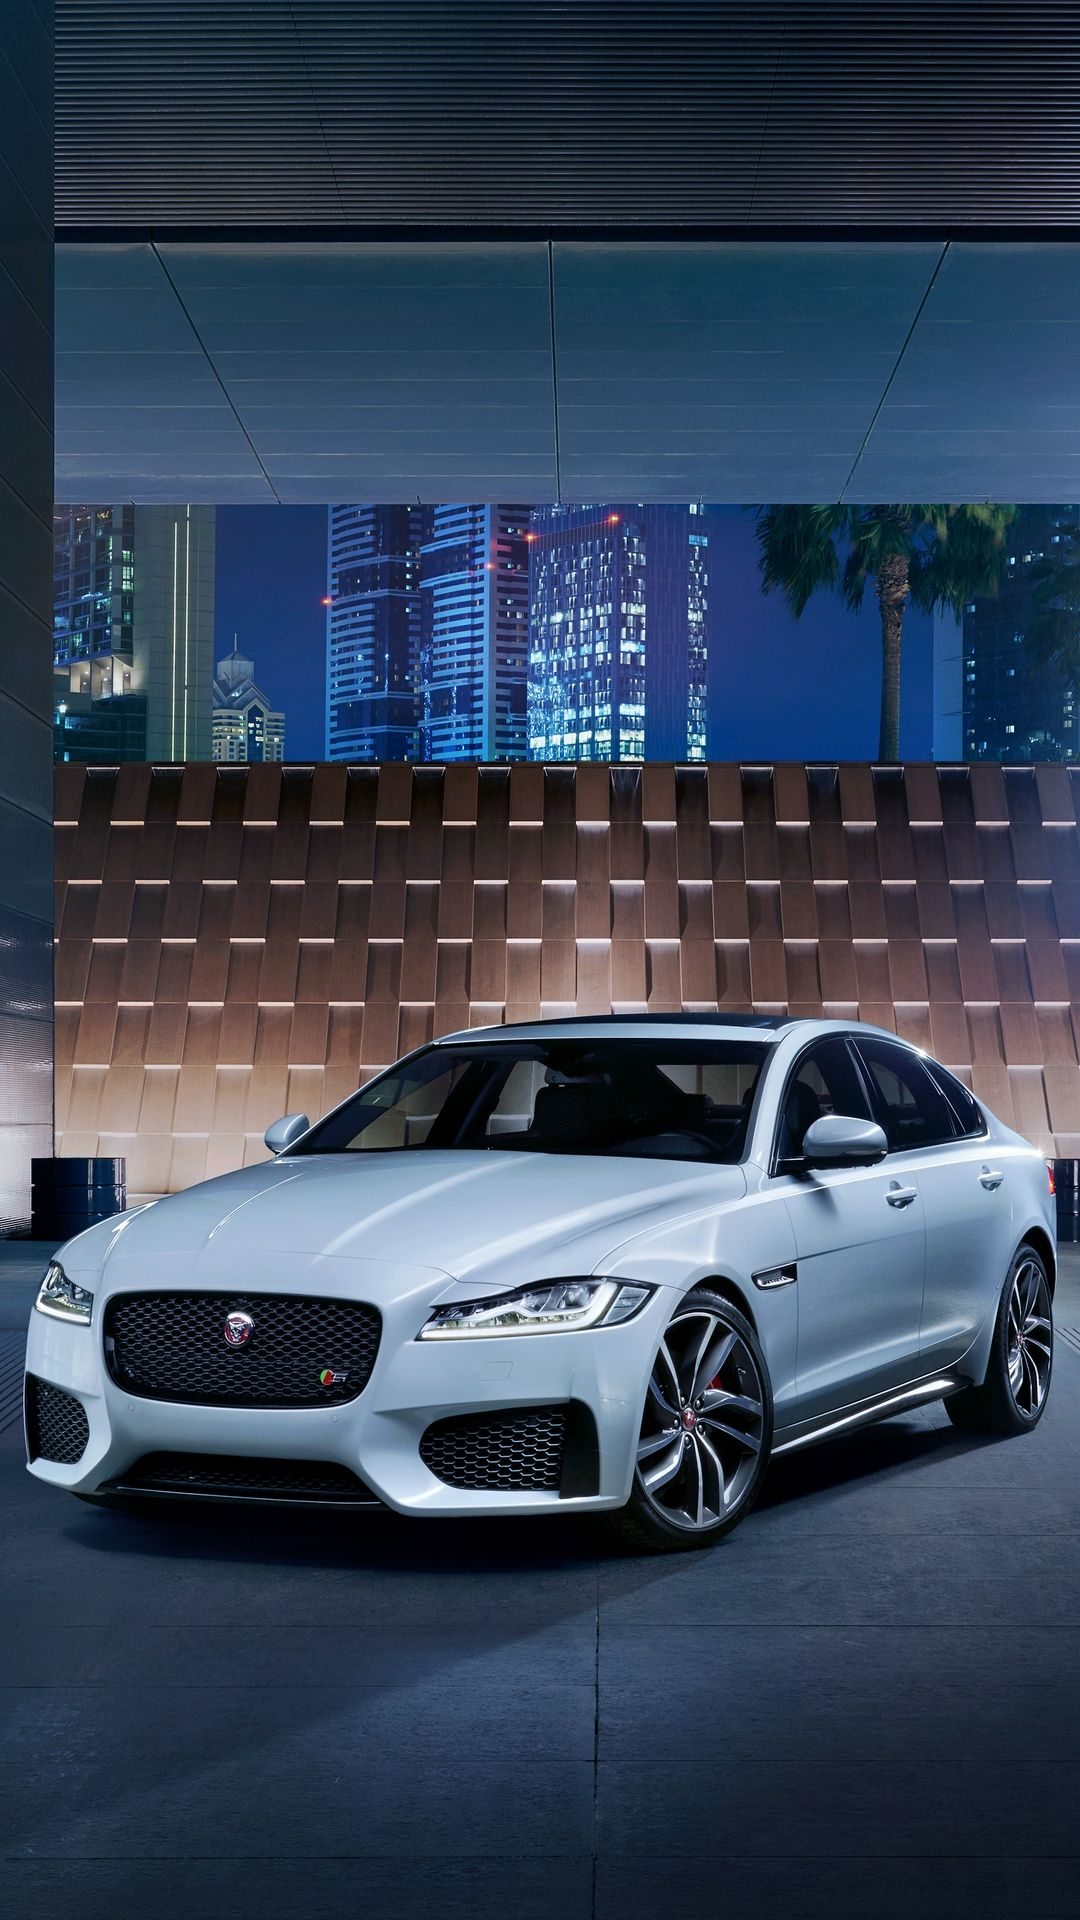 Install Daily Horoscope 2019 Xf S Test1 Awd Jaguar Cars Wallpaper Lockscreen Mobile Android Ios Infinitywallpaper Carros